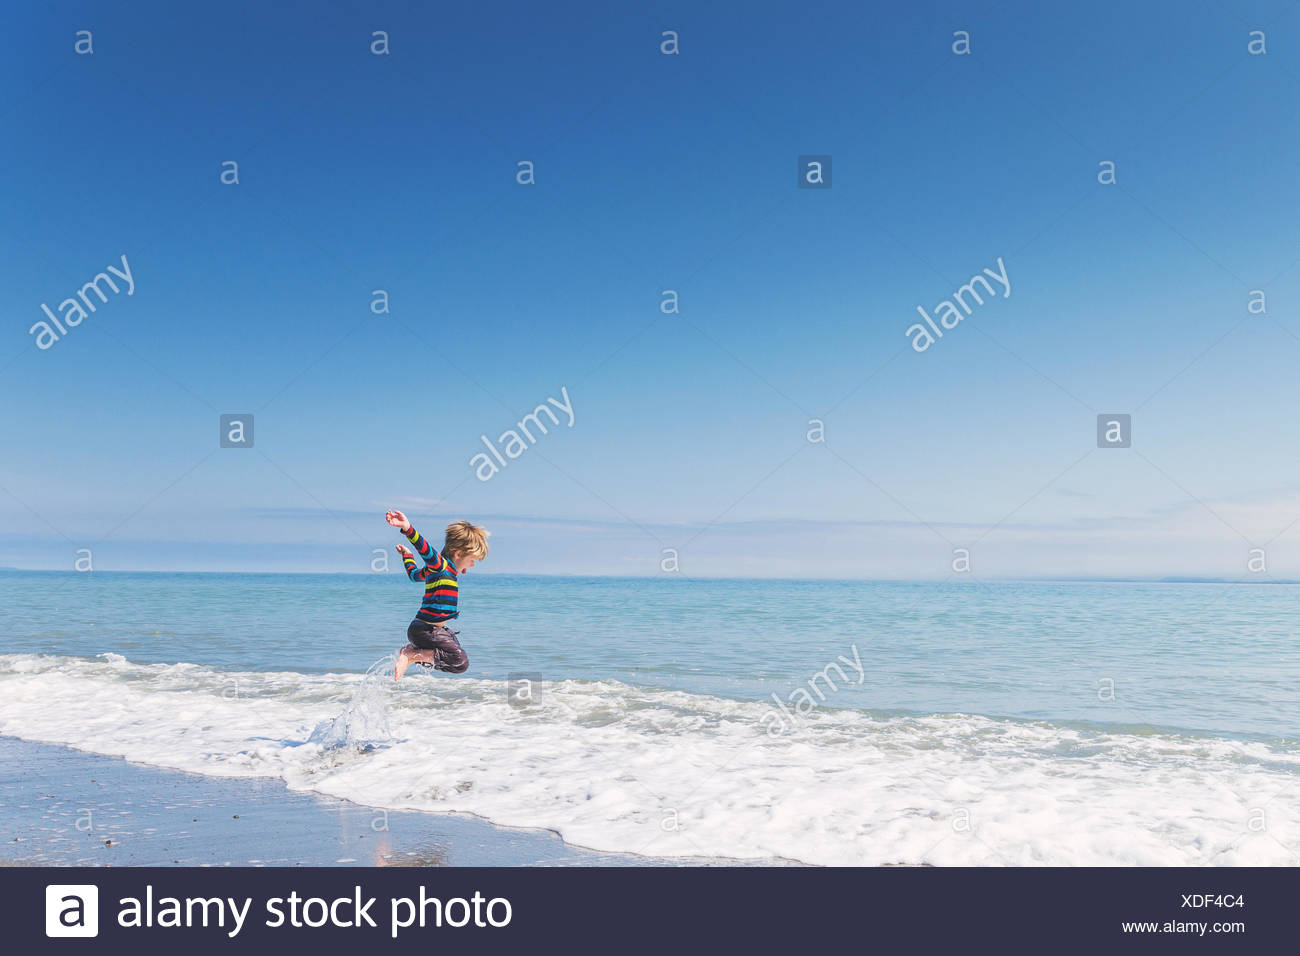 Boy jumping in surf - Stock Image